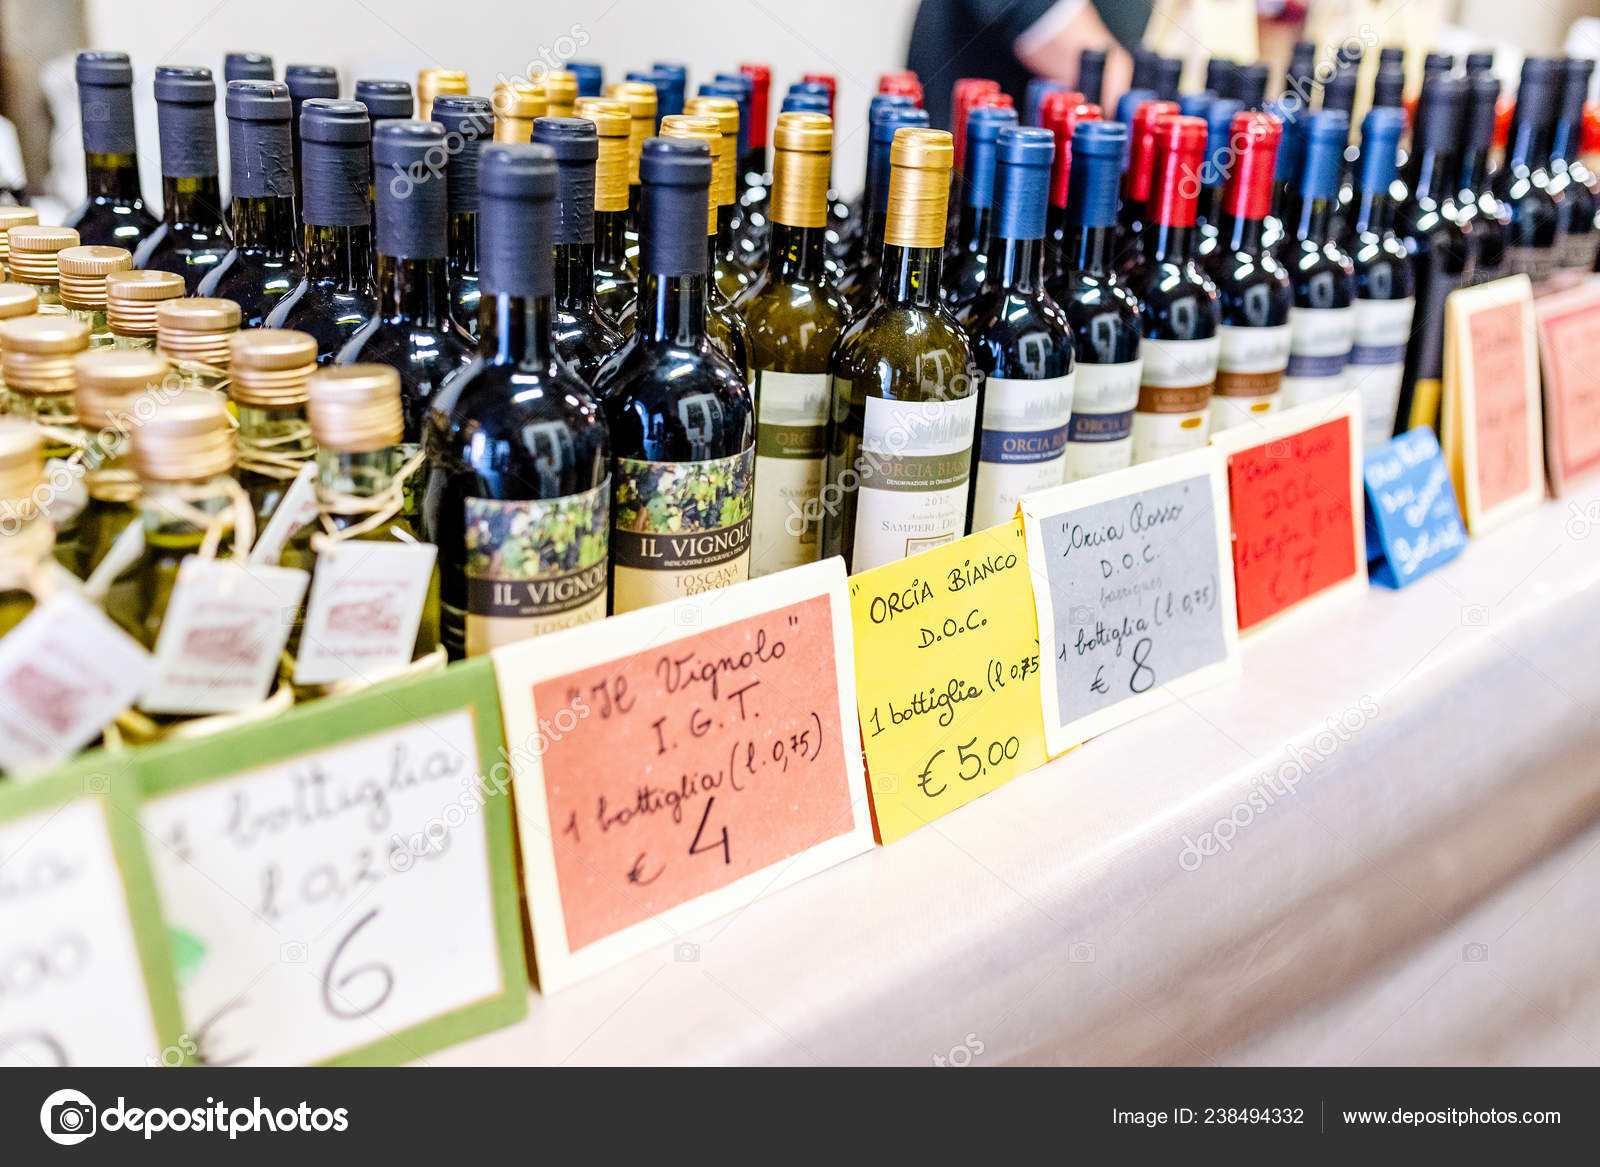 October 2018 San Quirico Orcia Italy Orcia Tuscany Wines Sale